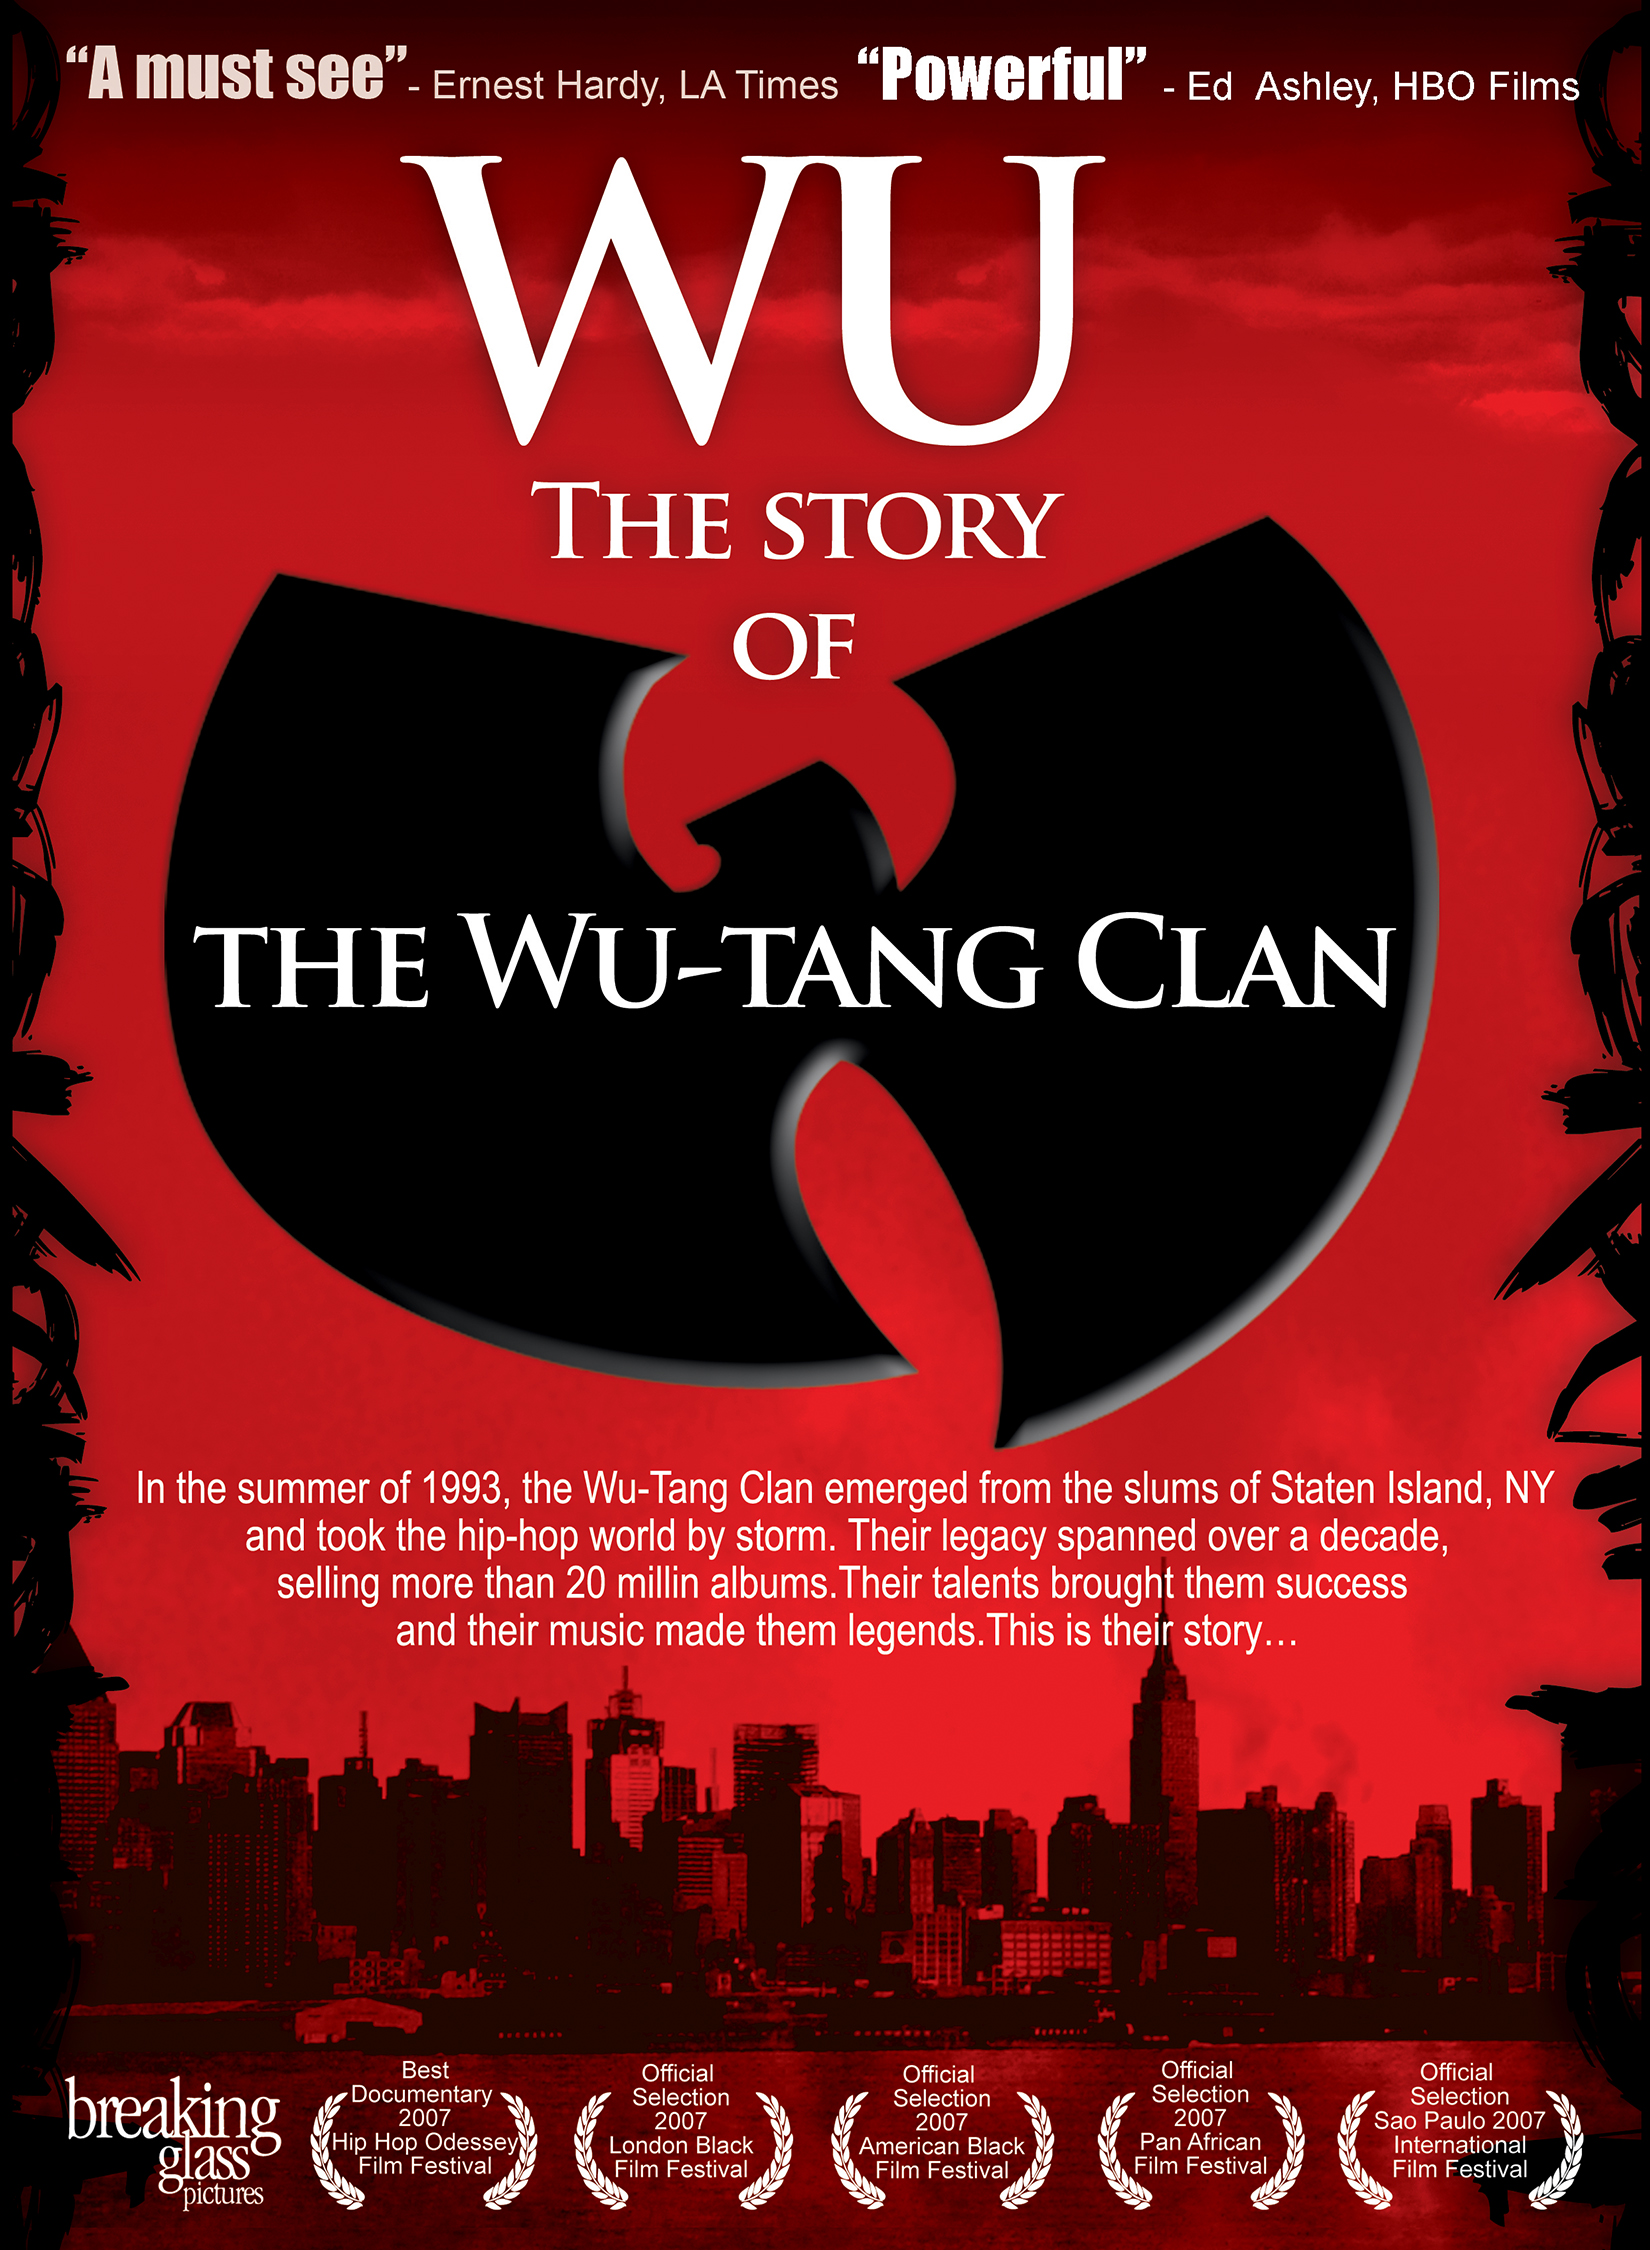 Wu: The Story of the Wu-Tang Clan (2007) - IMDb